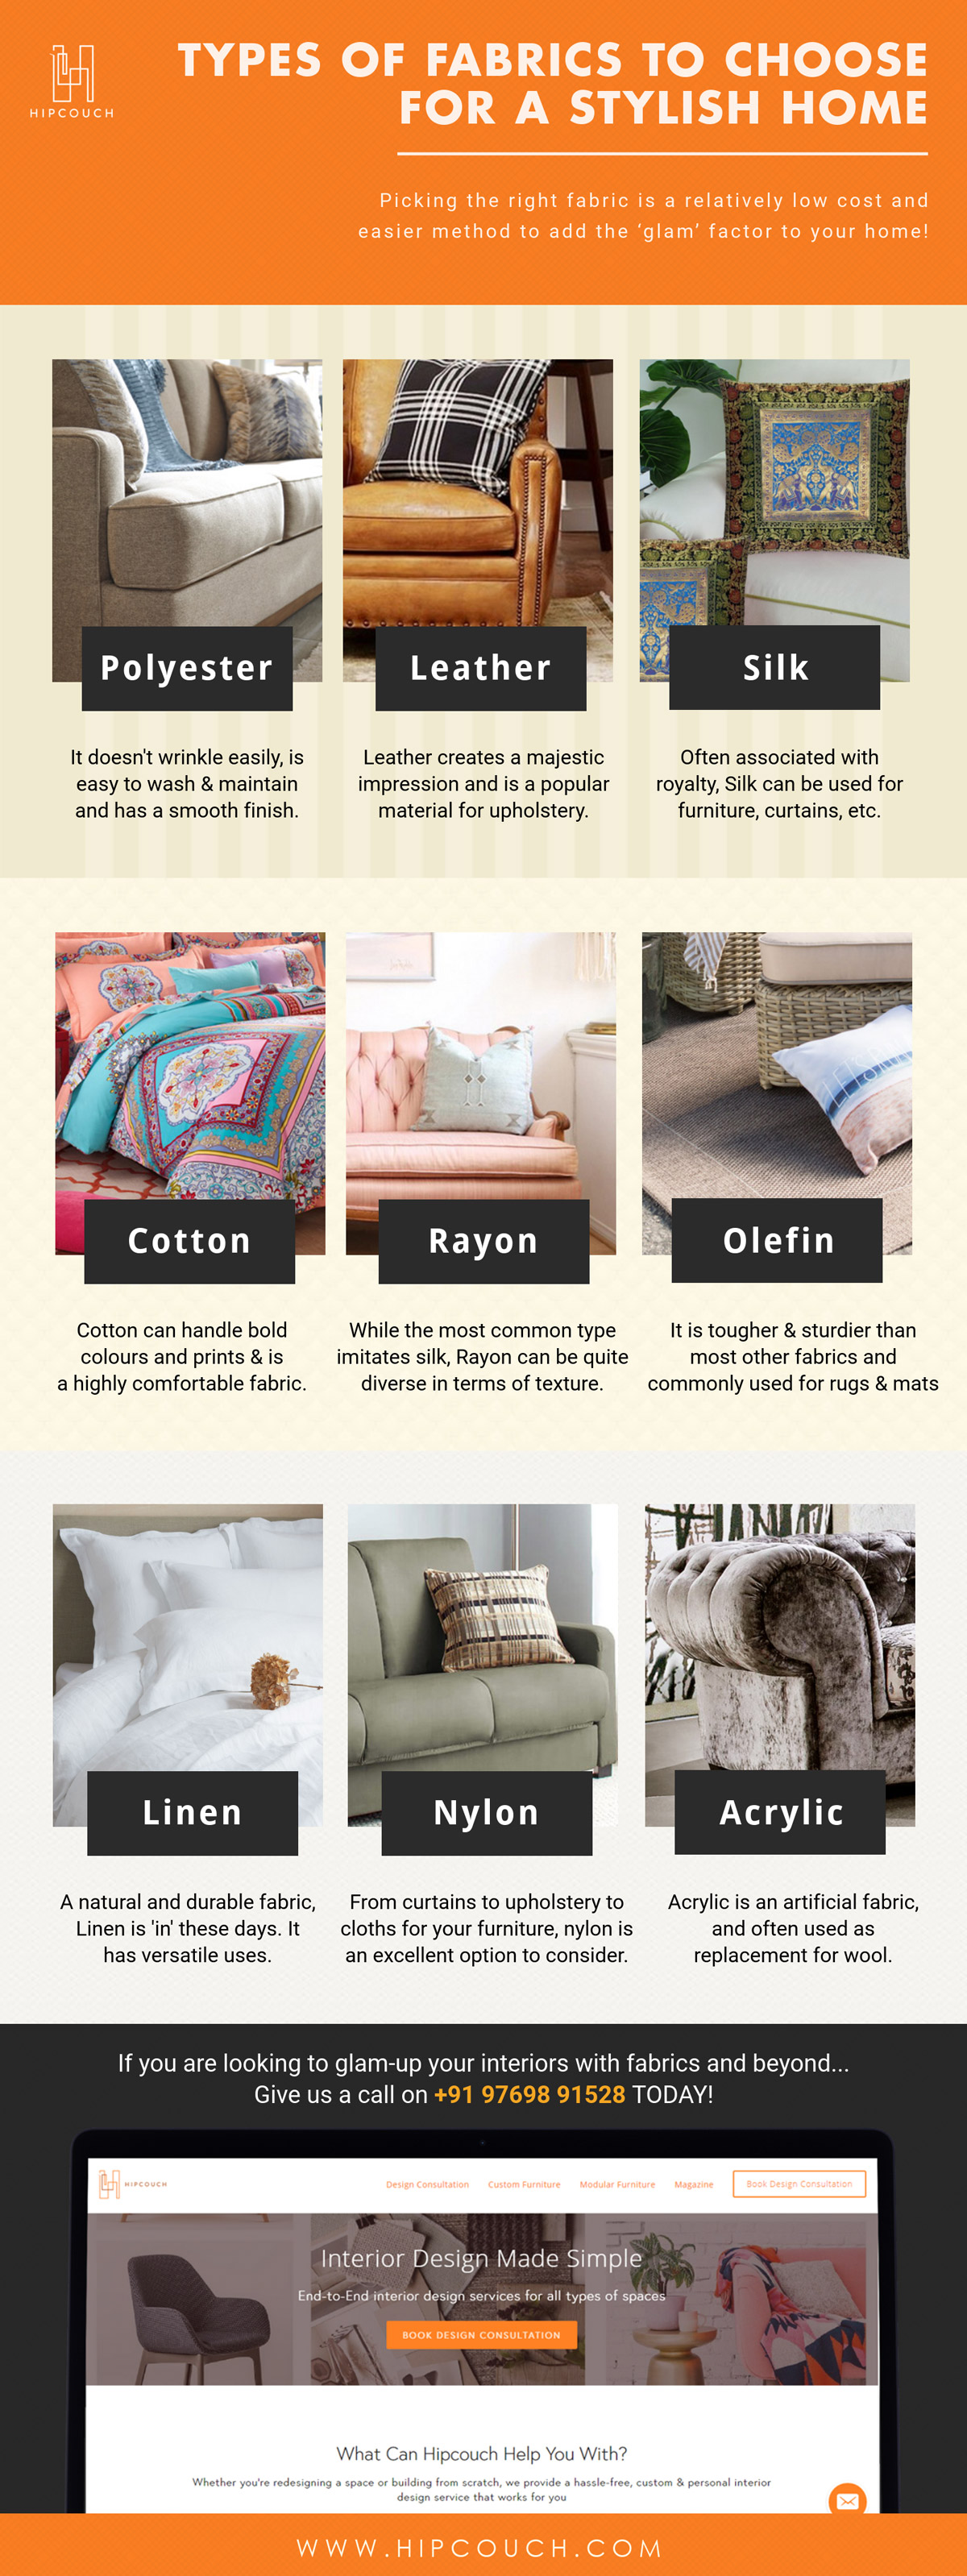 What Fabrics Can You Use To Dress Up Your Home?